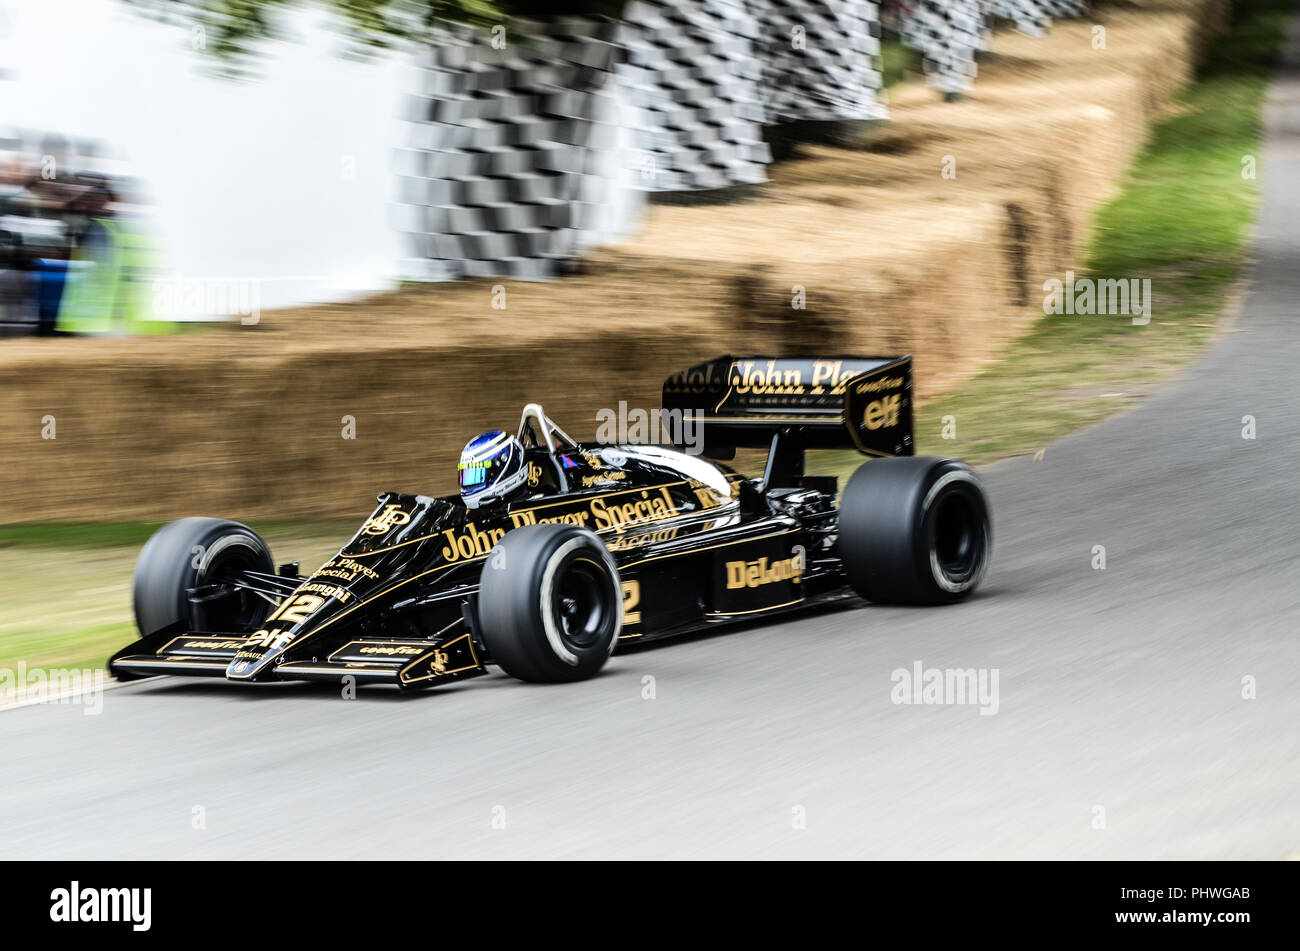 ayrton senna schwarzer lotus 98 t john player special. Black Bedroom Furniture Sets. Home Design Ideas